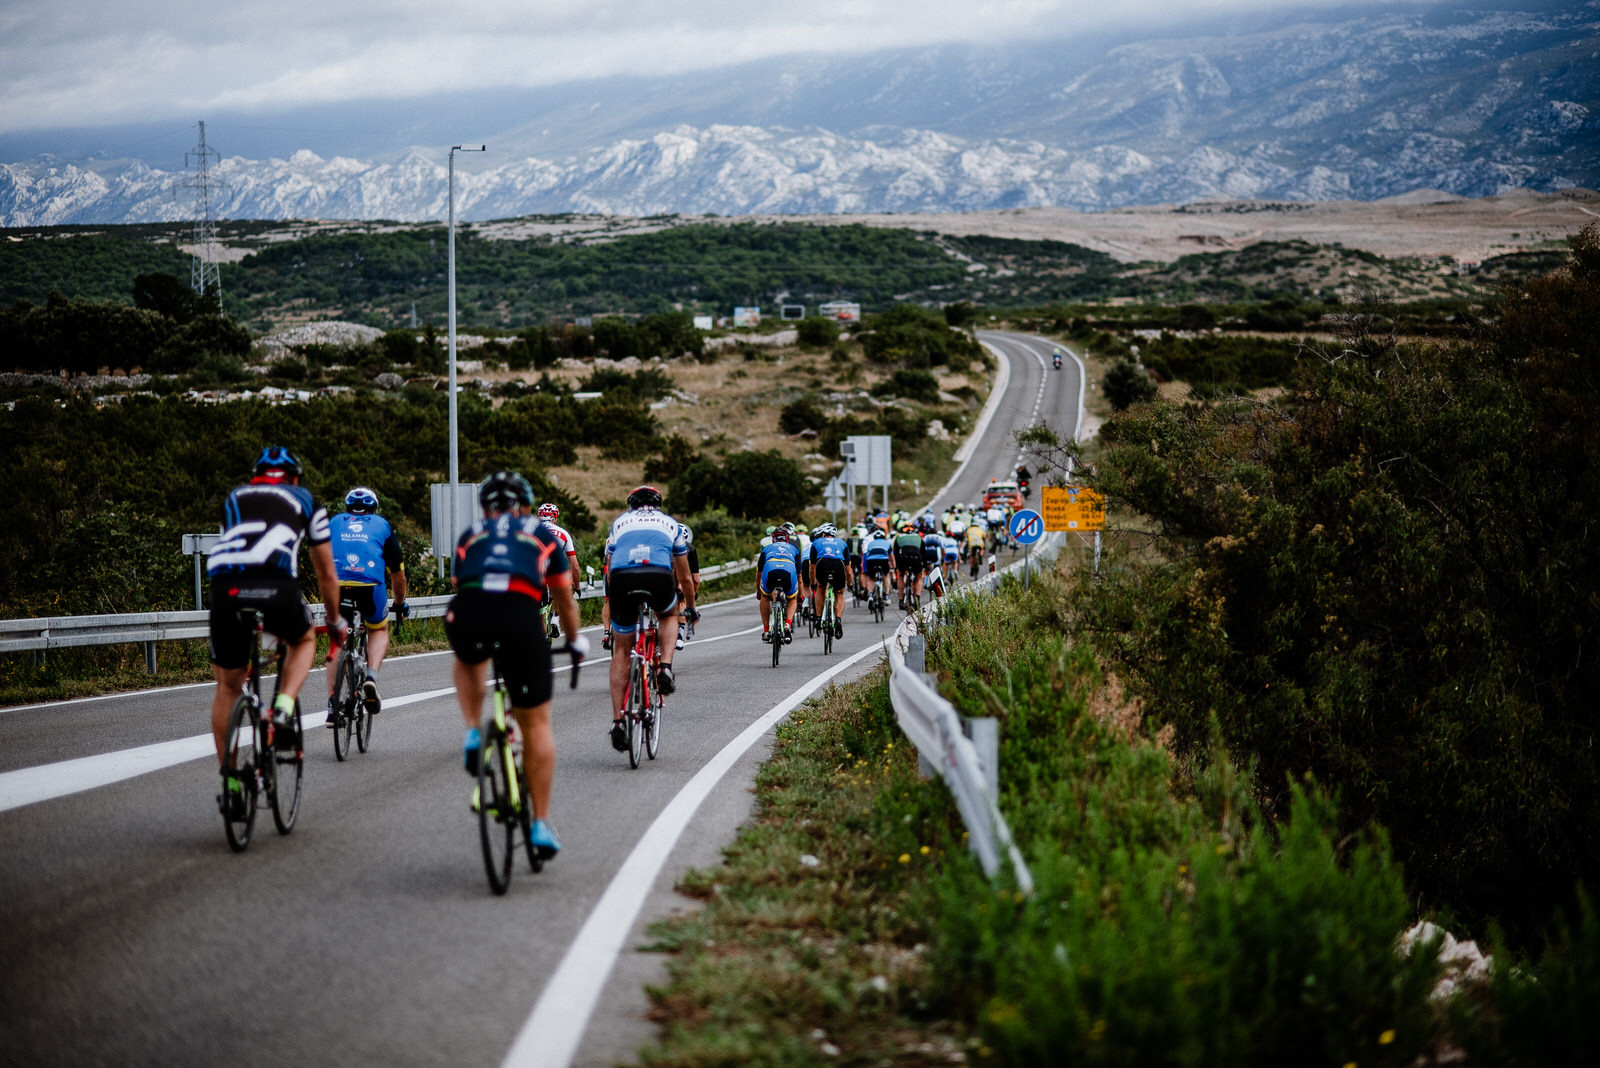 likaclub_Granfondo-Pag-–-Cycling-on-the-Moon_2019-8